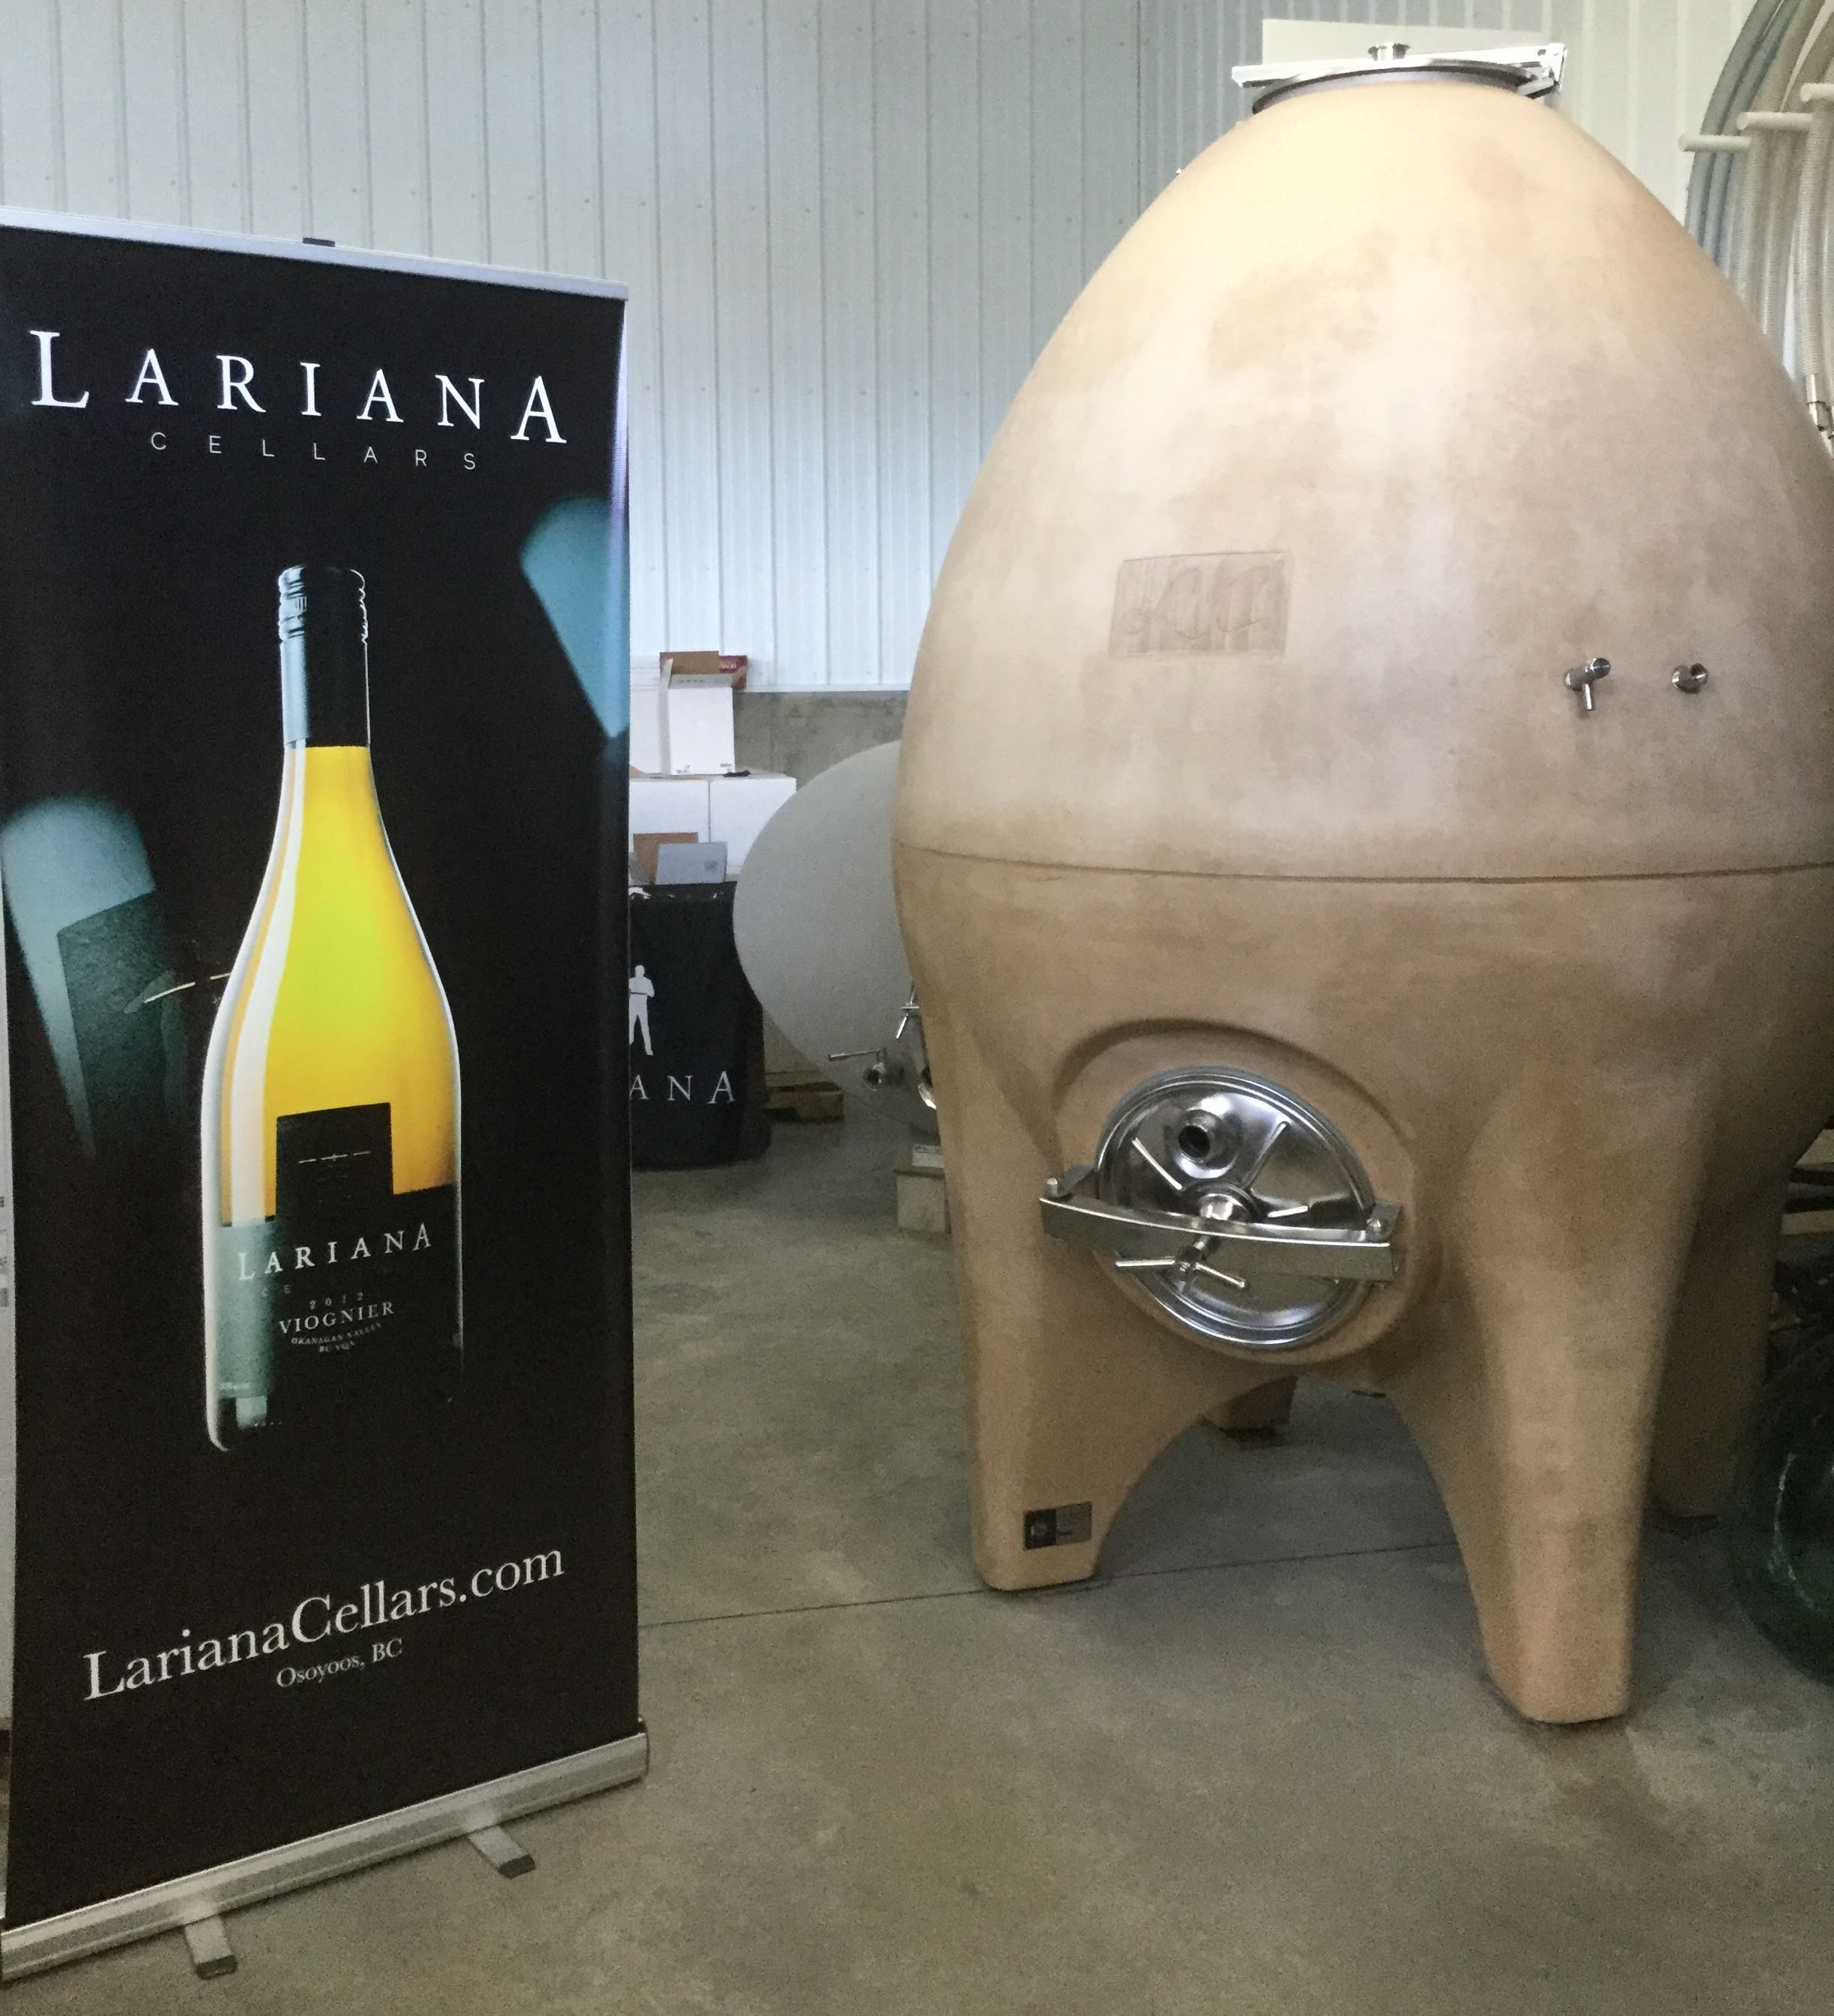 The fermentation egg at Lariana for the Viognier